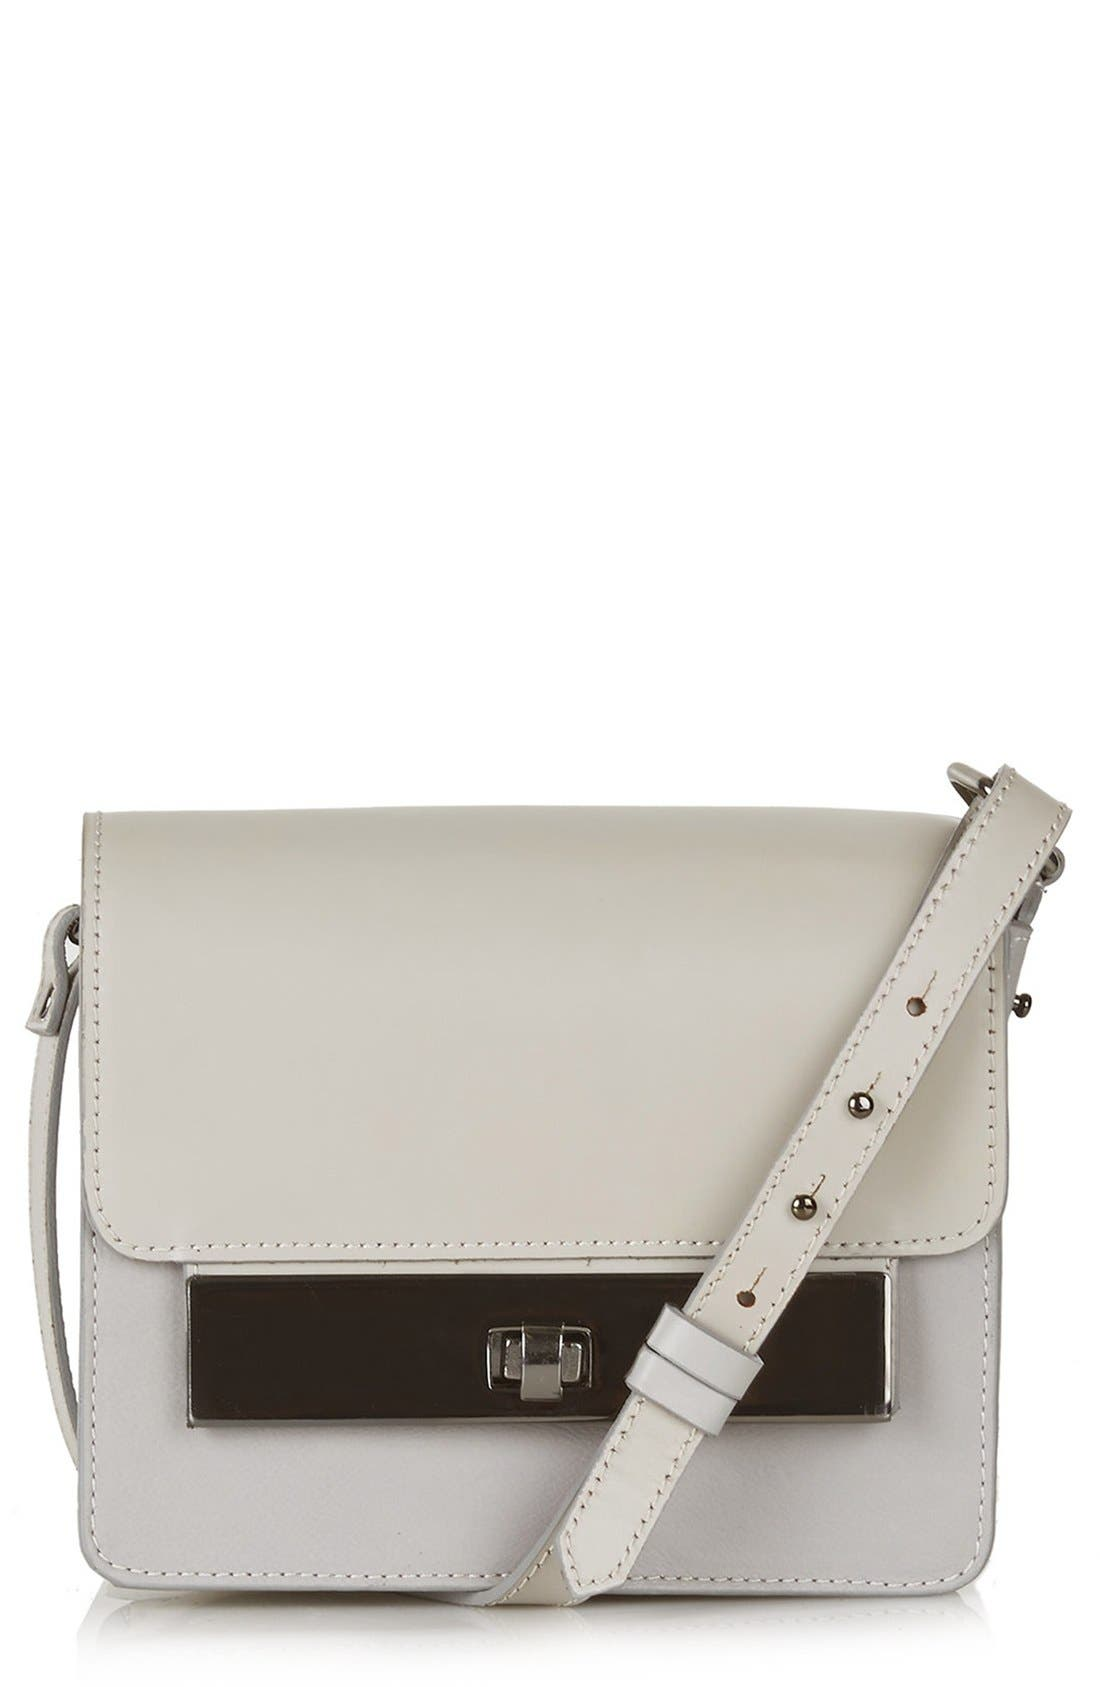 Alternate Image 1 Selected - Topshop Premium Plate Shoulder Bag